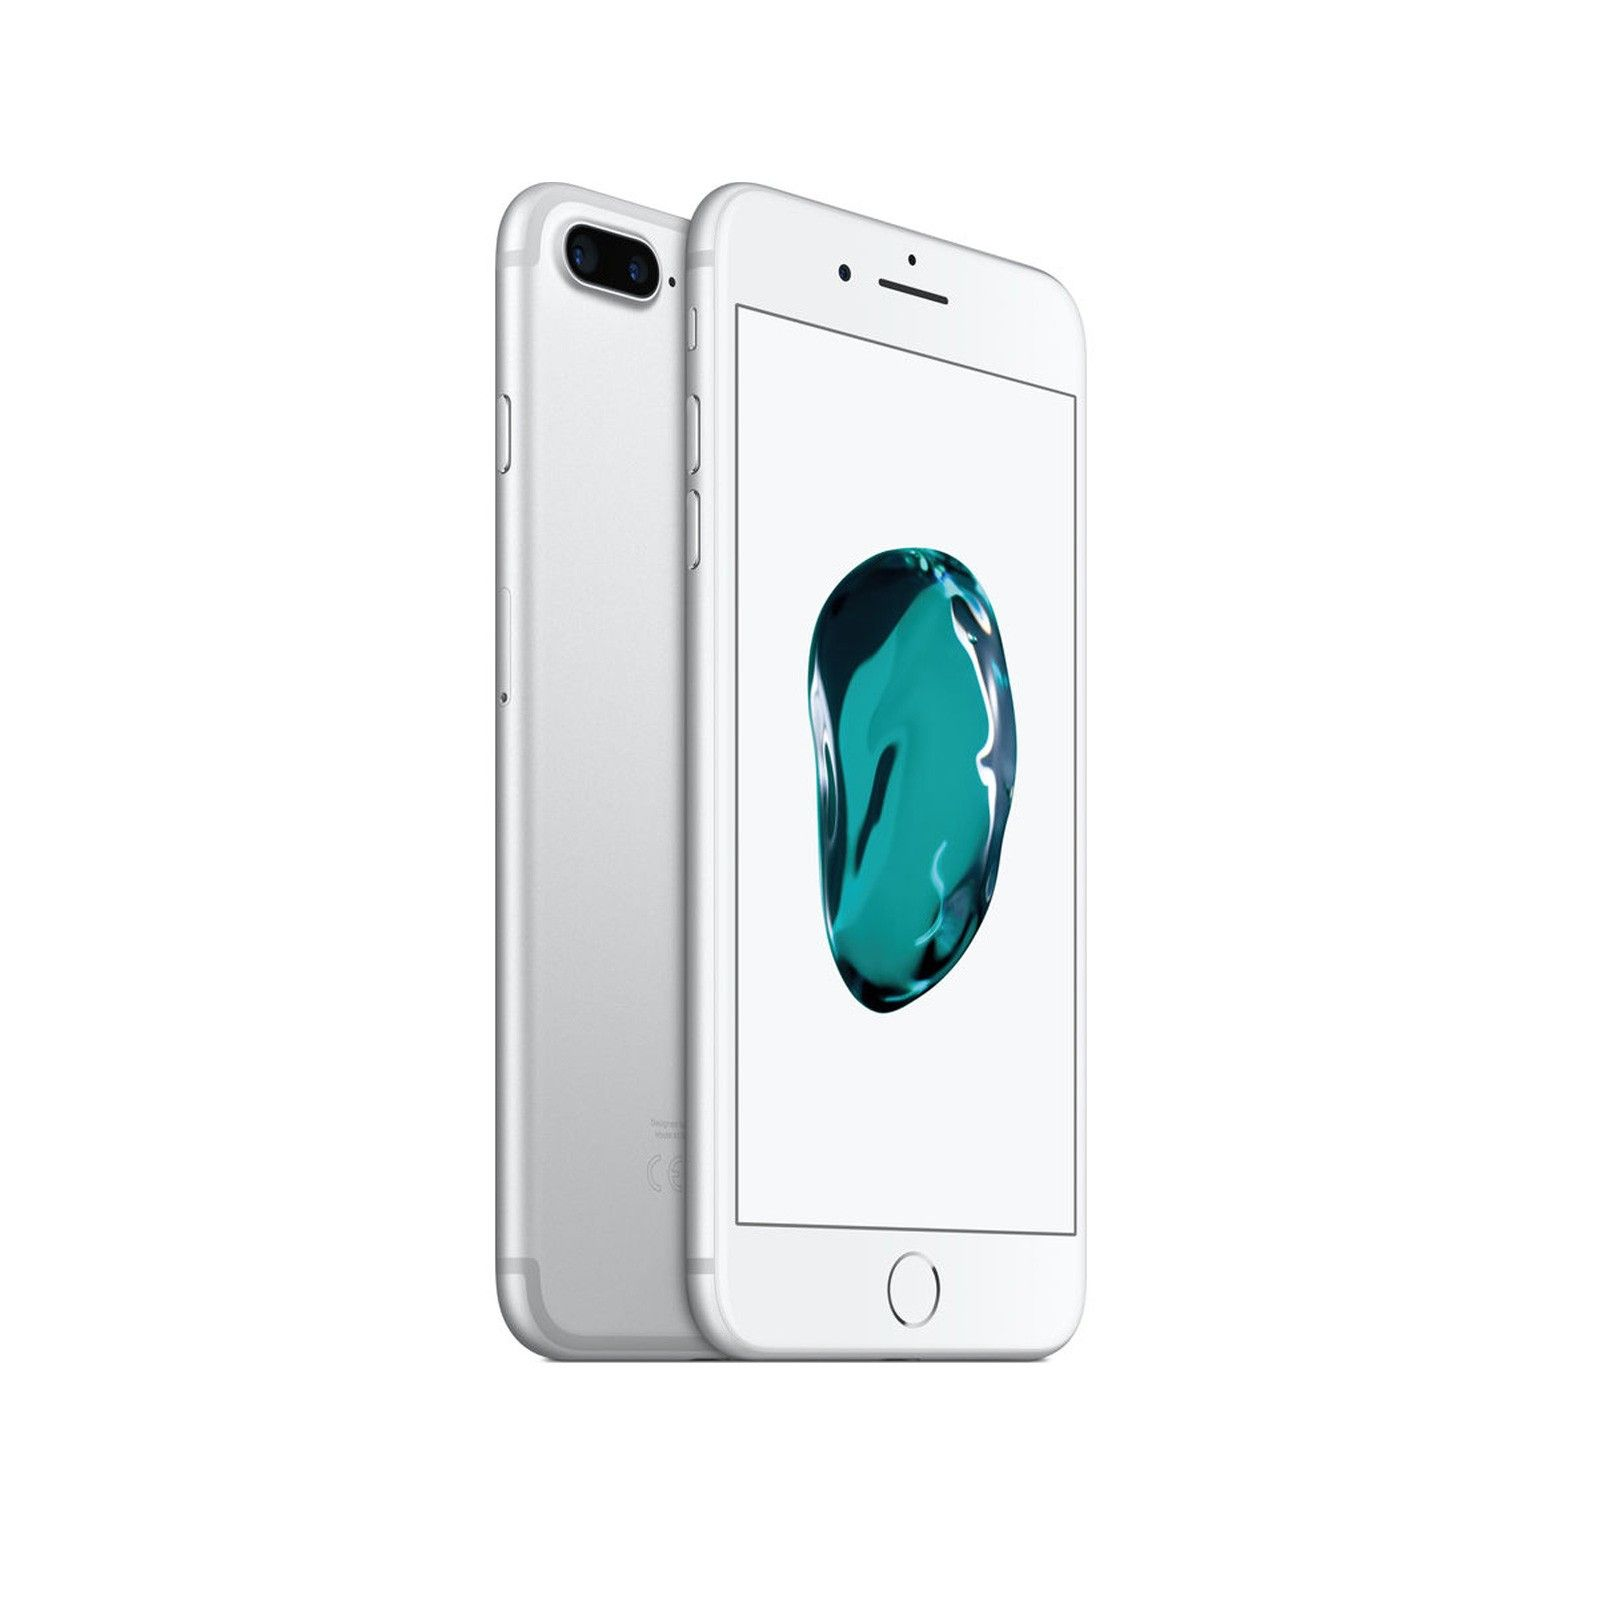 Apple Iphone 7 Plus Silver 32gb Siliguri Placewell Retail Iphone Price Iphone Iphone 7